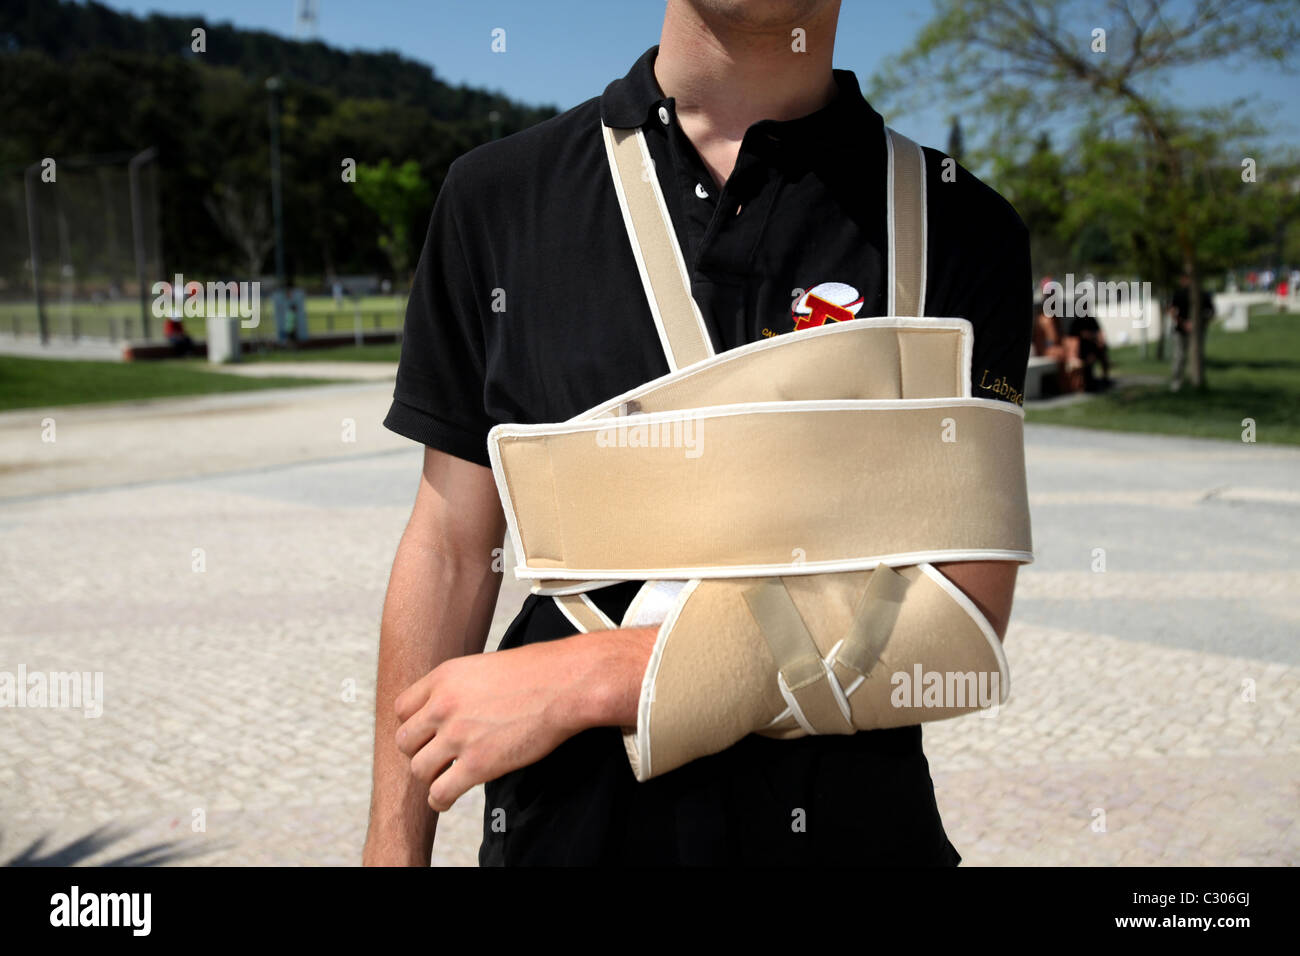 Young man with is arm in a sling. - Stock Image